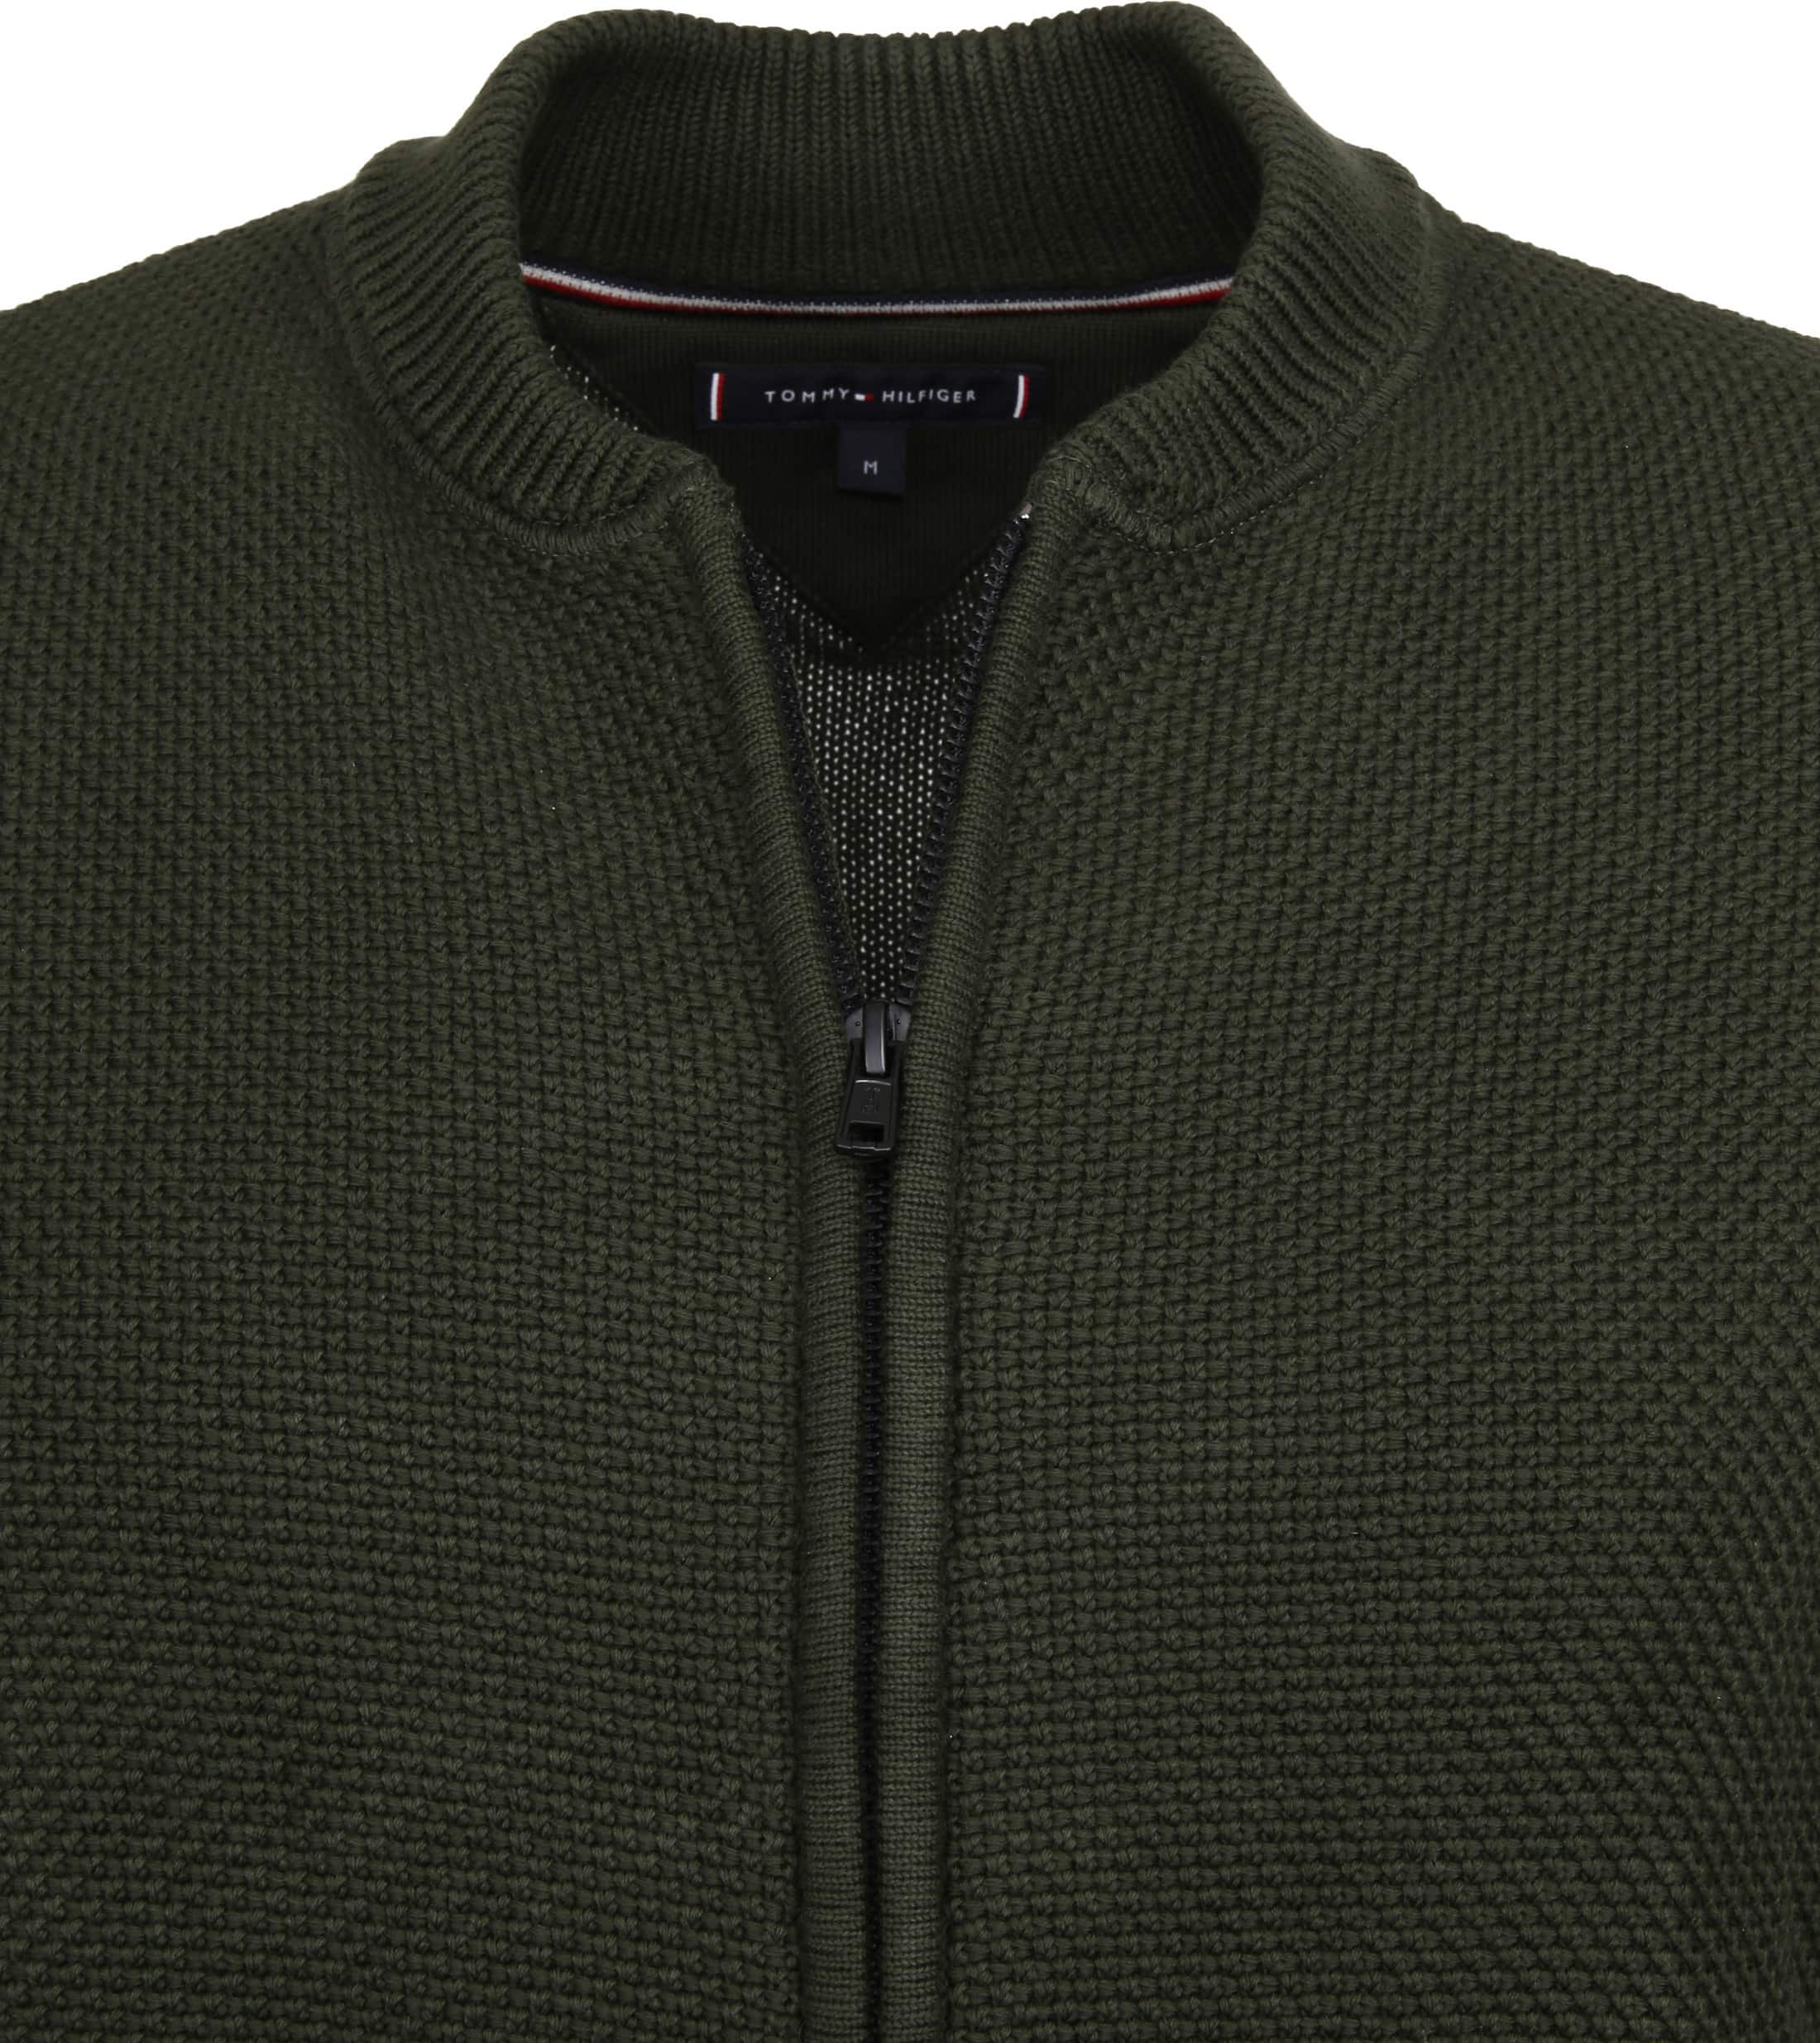 Tommy Hilfiger Cardigan Textured Green foto 1